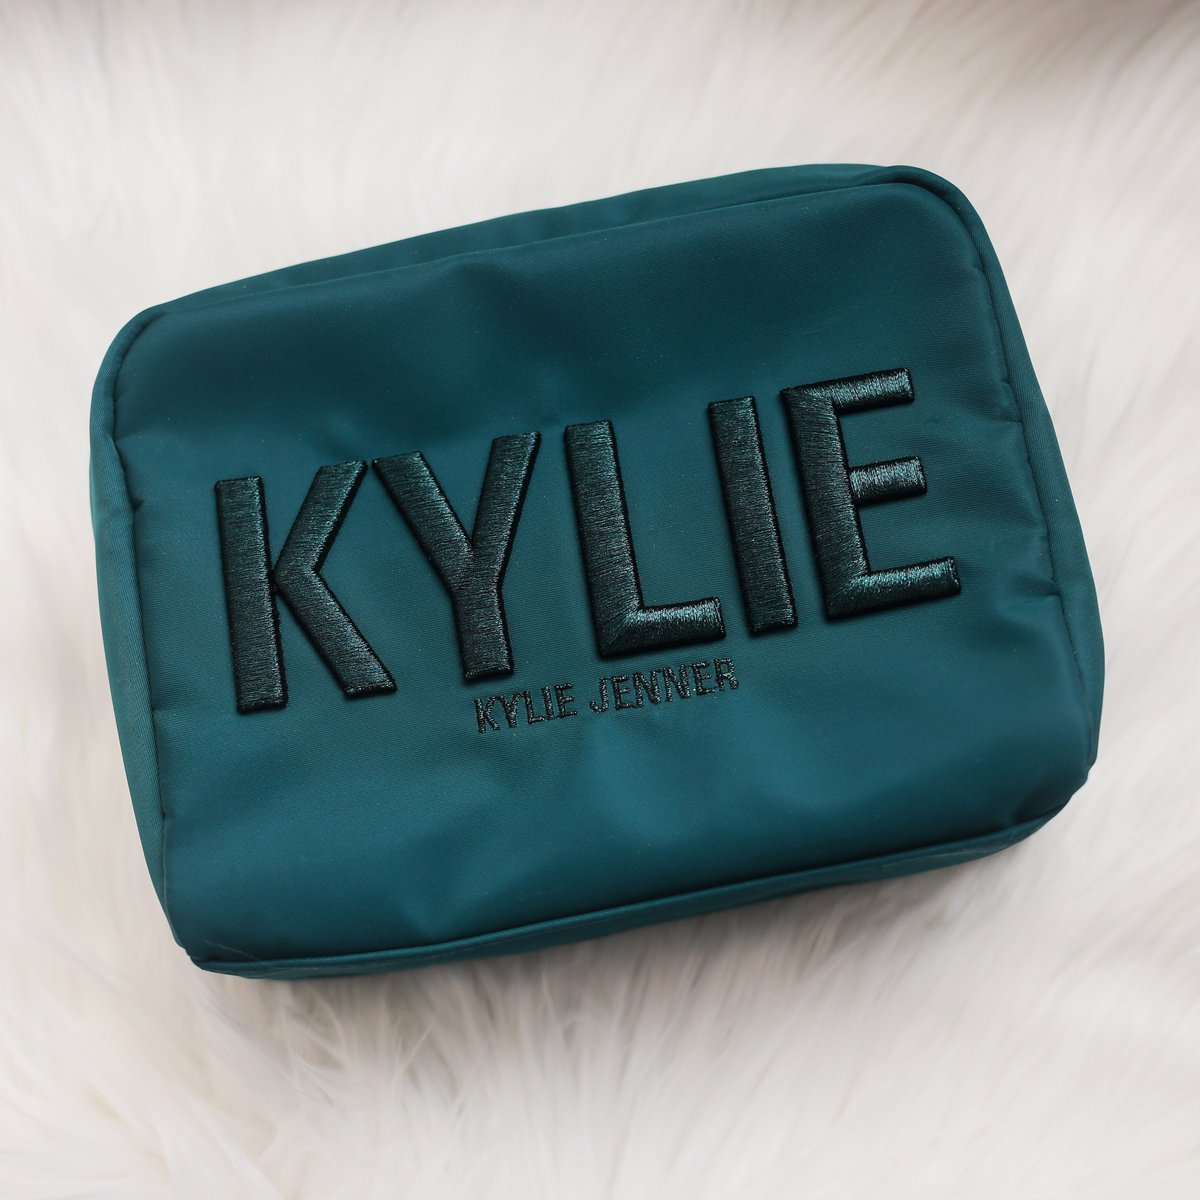 Necessaire Holiday Collection KYLIE COSMETICS